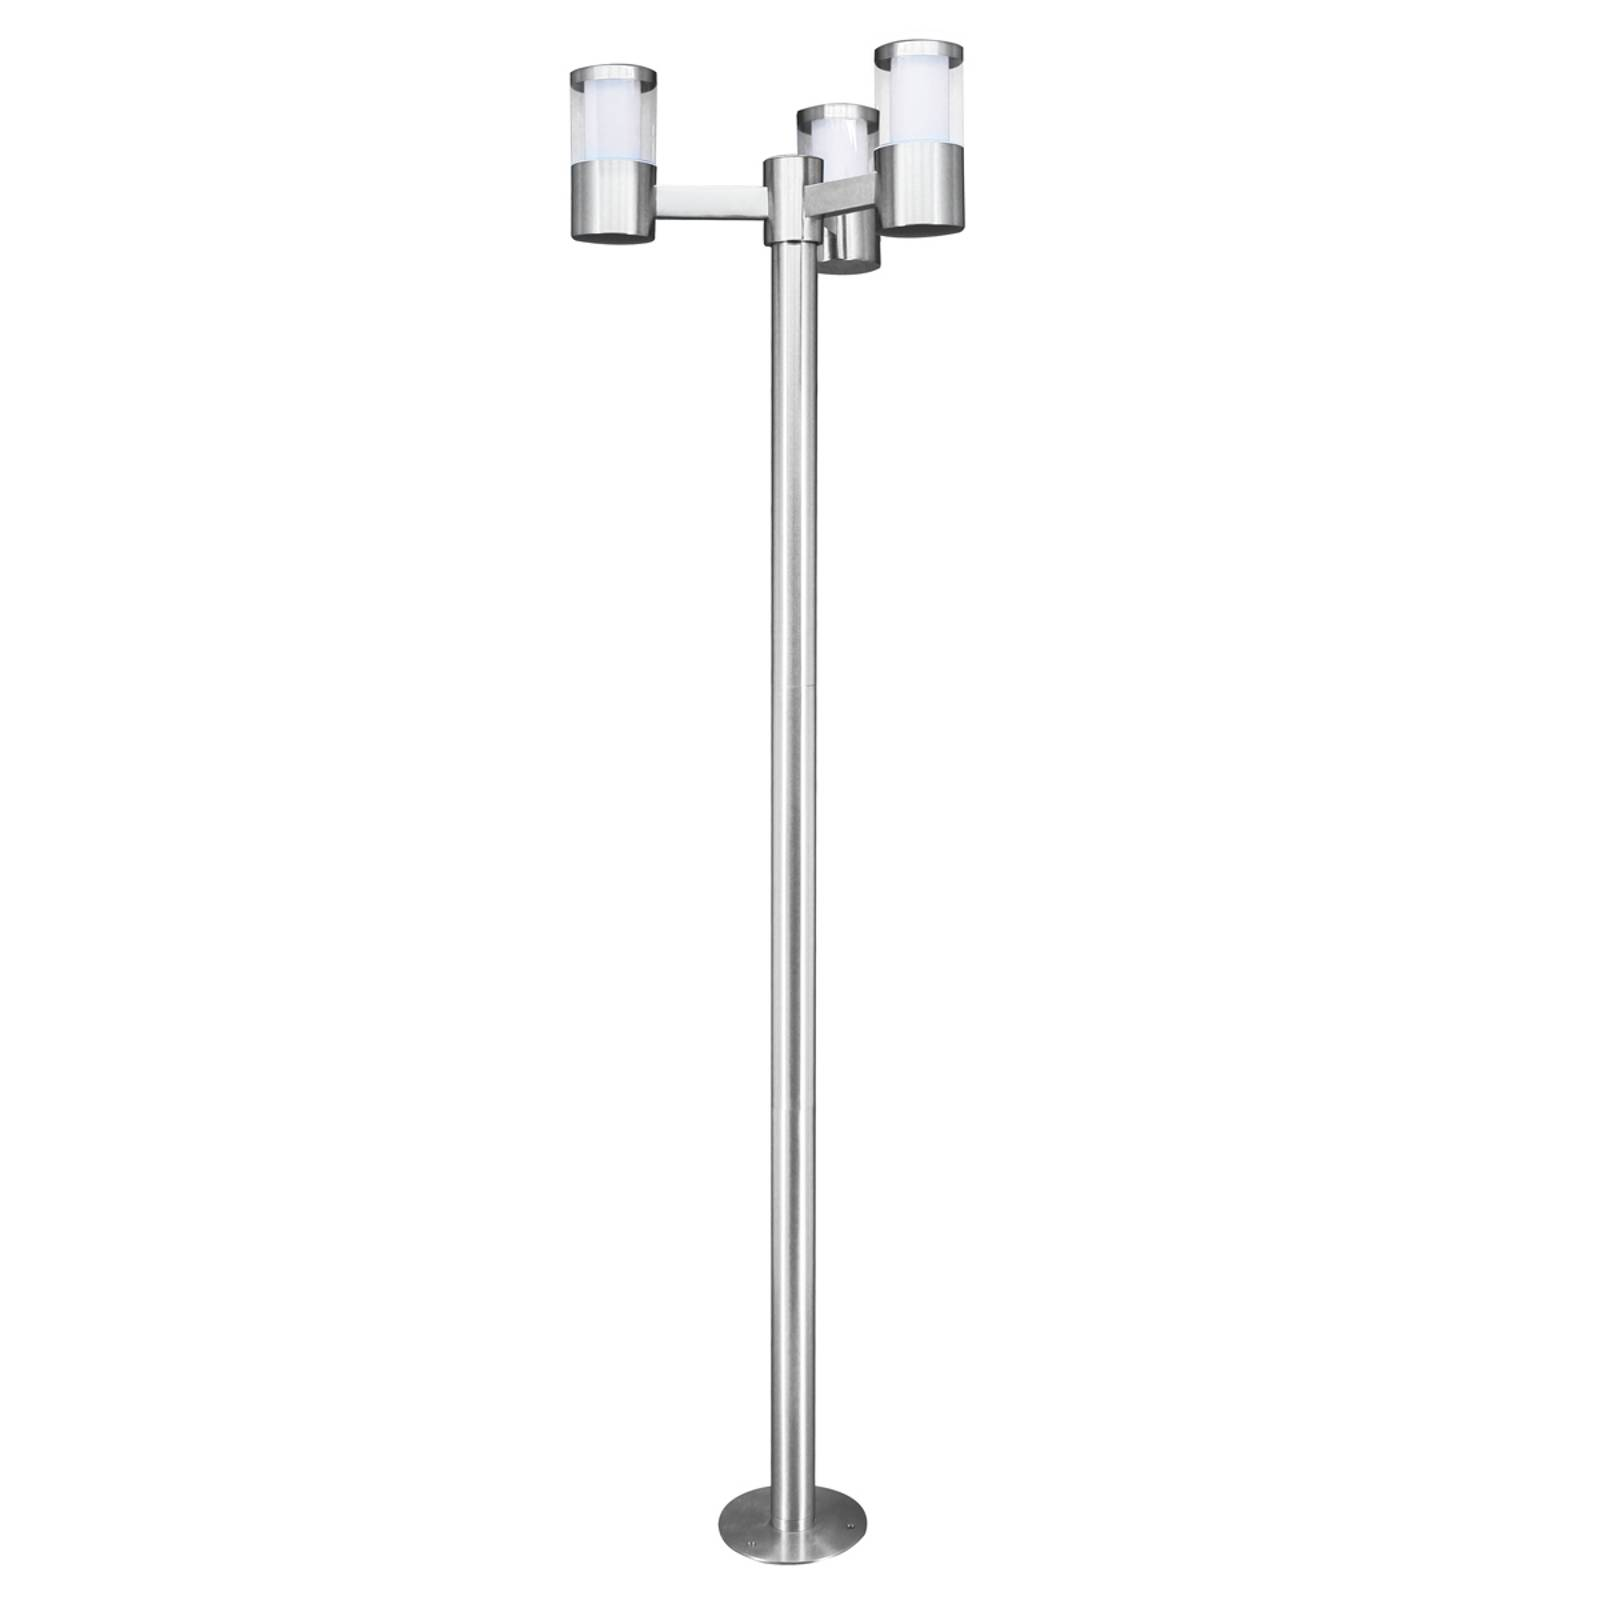 Modern Basalgo stainless steel LED post light from EGLO